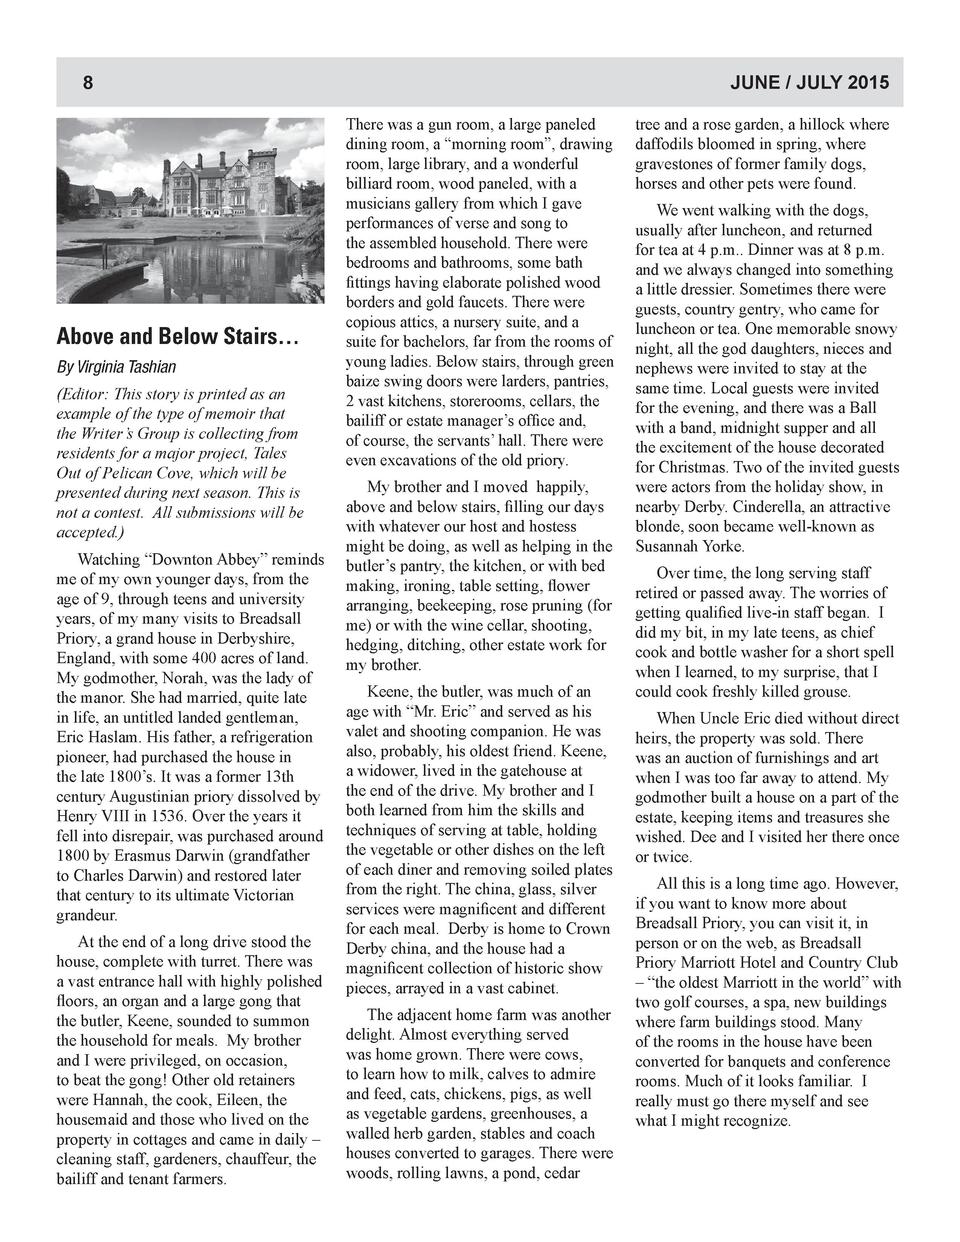 JUNE   JULY 2015  8  Above and Below Stairs    By Virginia Tashian  Editor  This story is printed as an example of the typ...